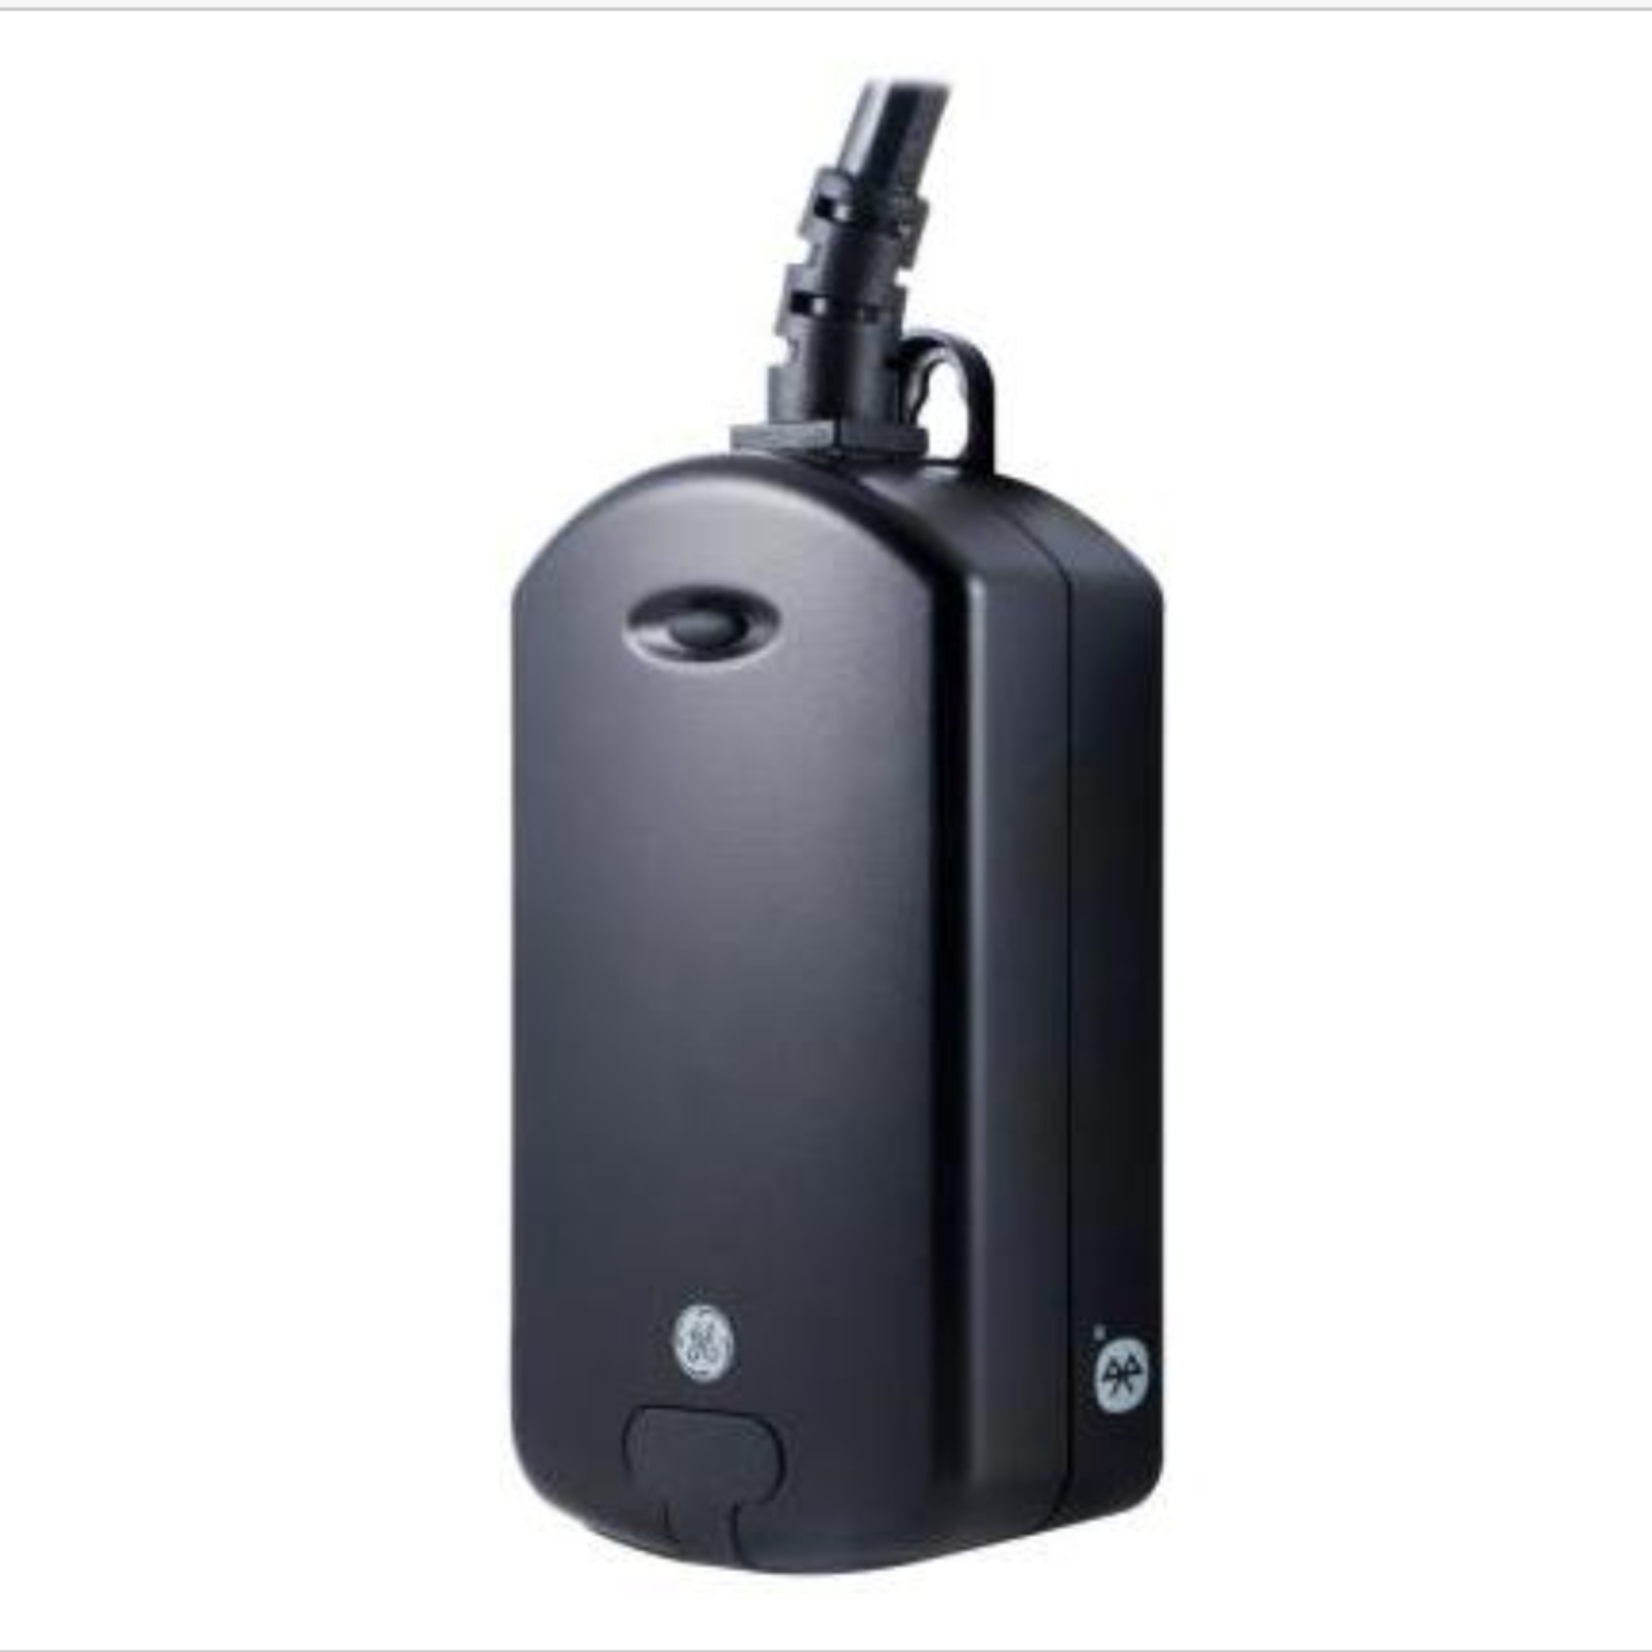 10180 GE Plug-in Outdoor Bluetooth Smart Switch